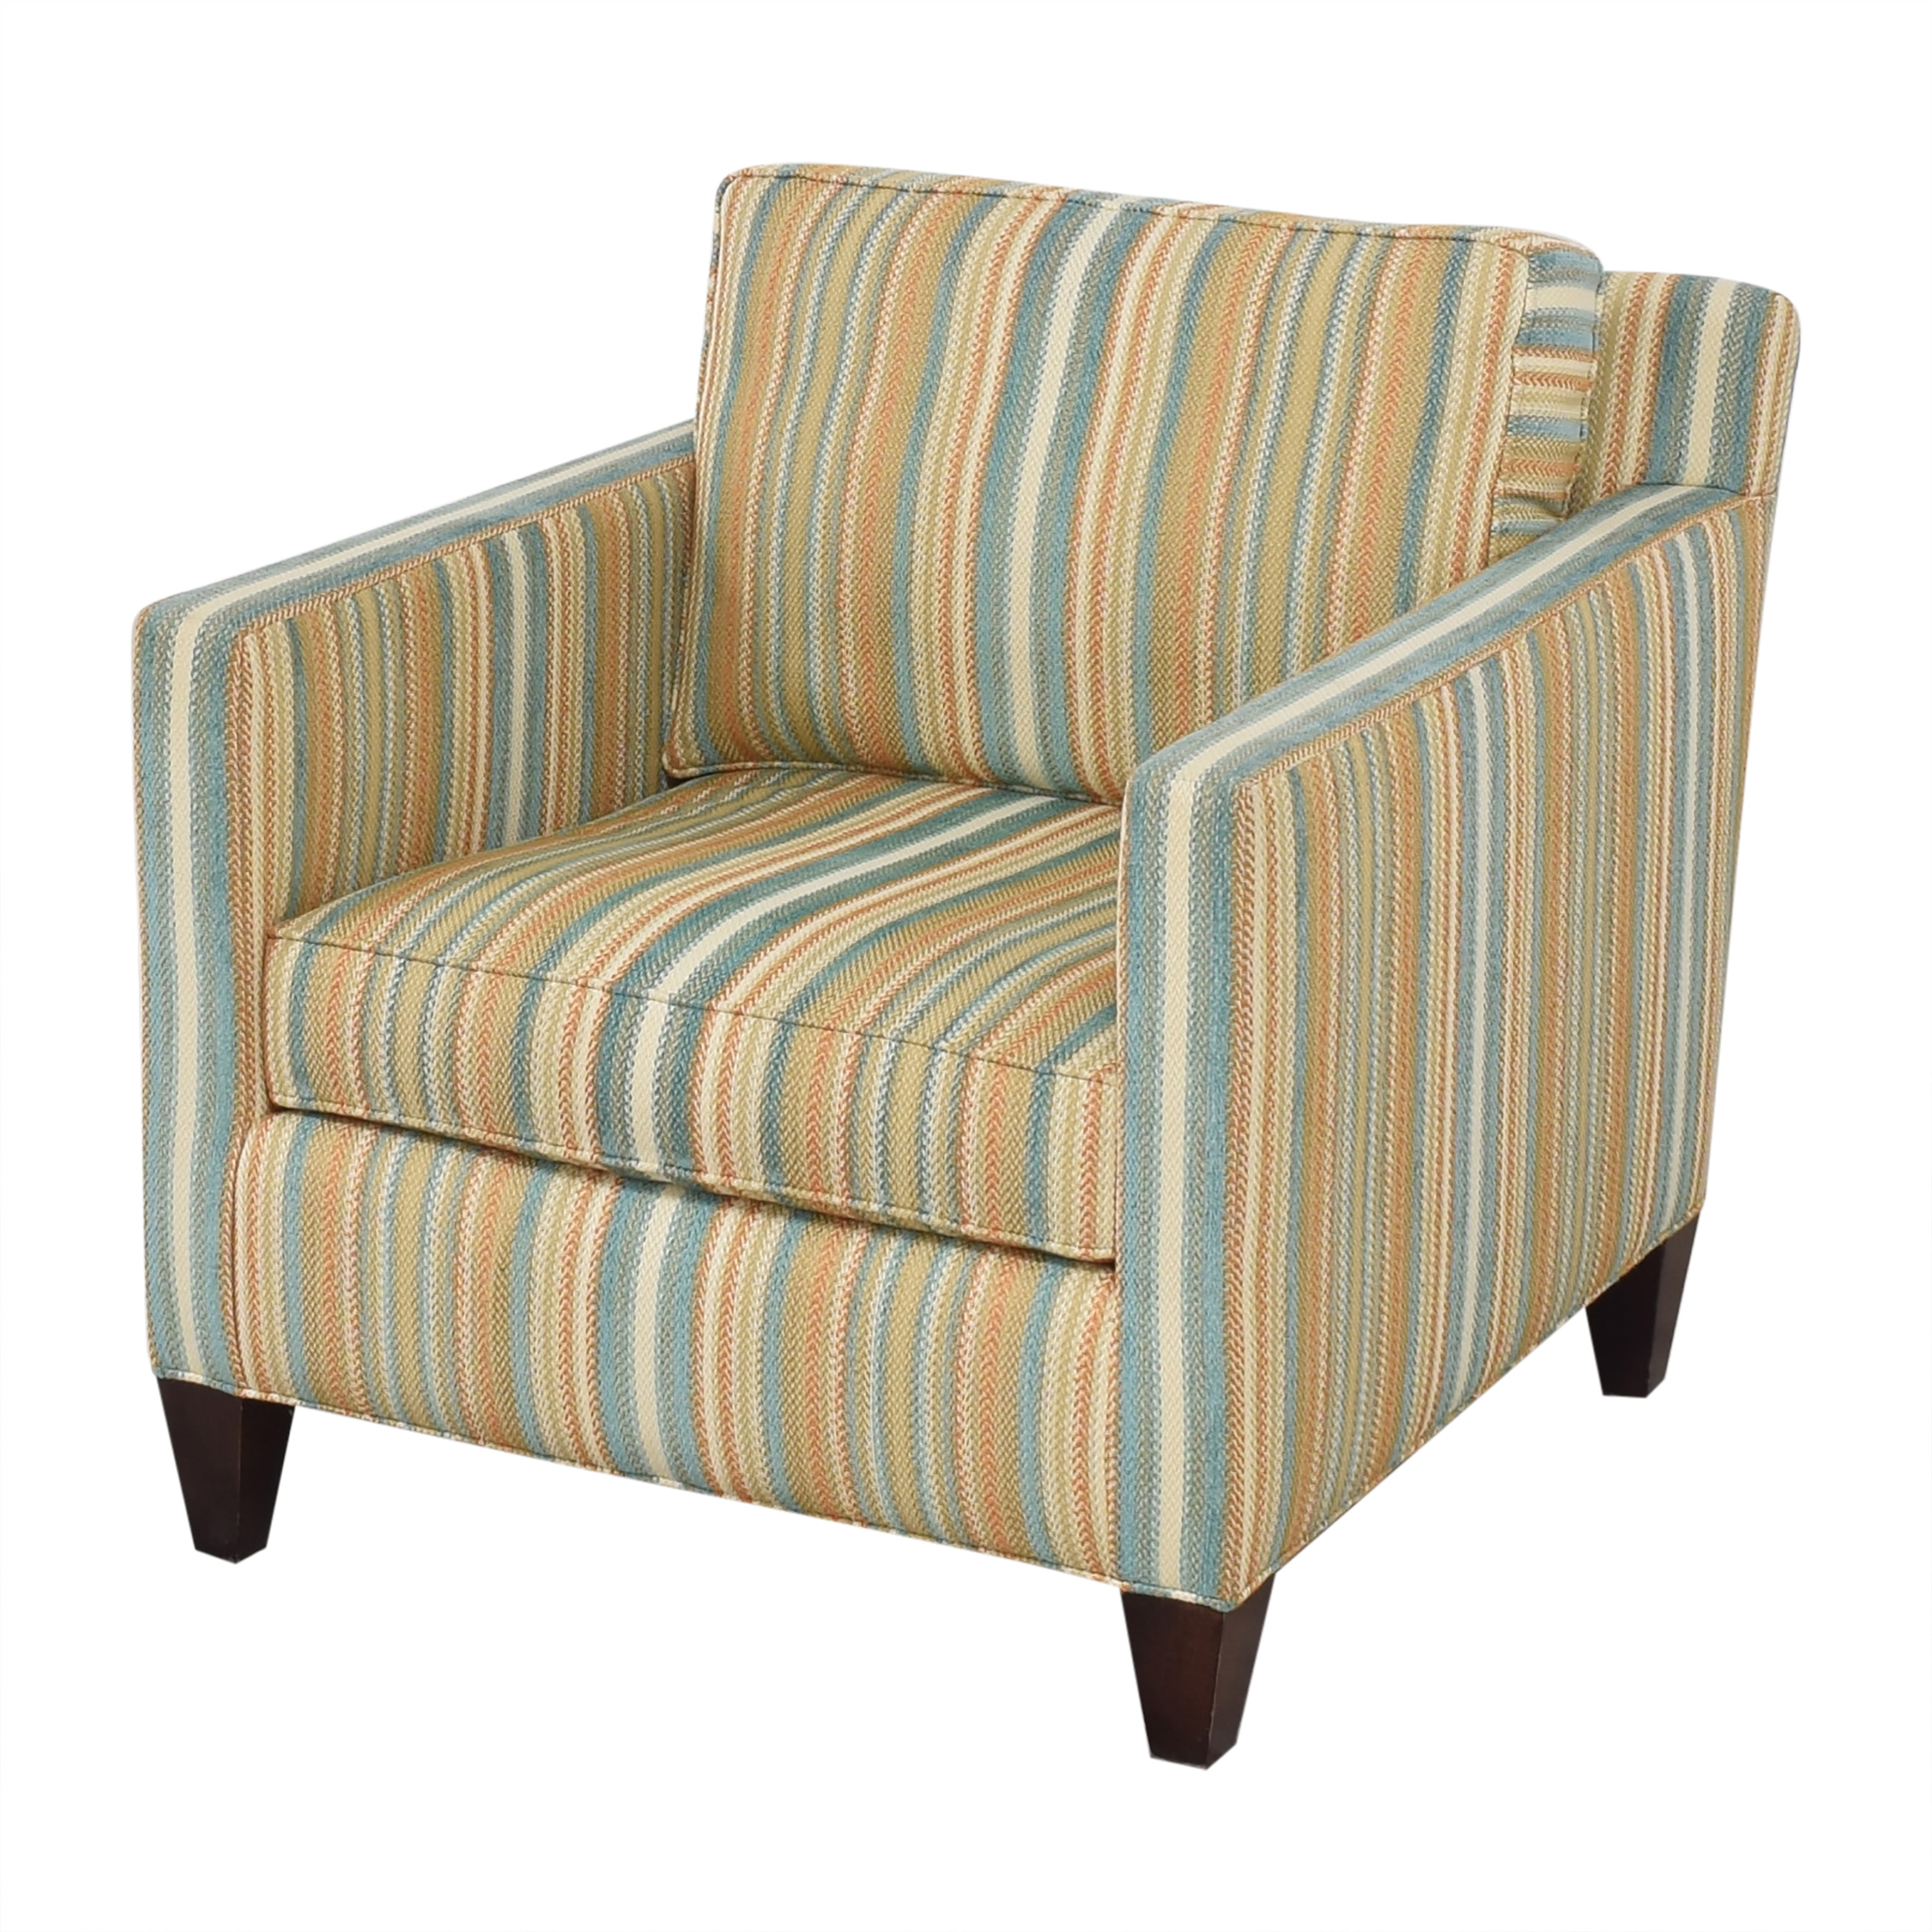 Thomasville Striped Accent Chair sale